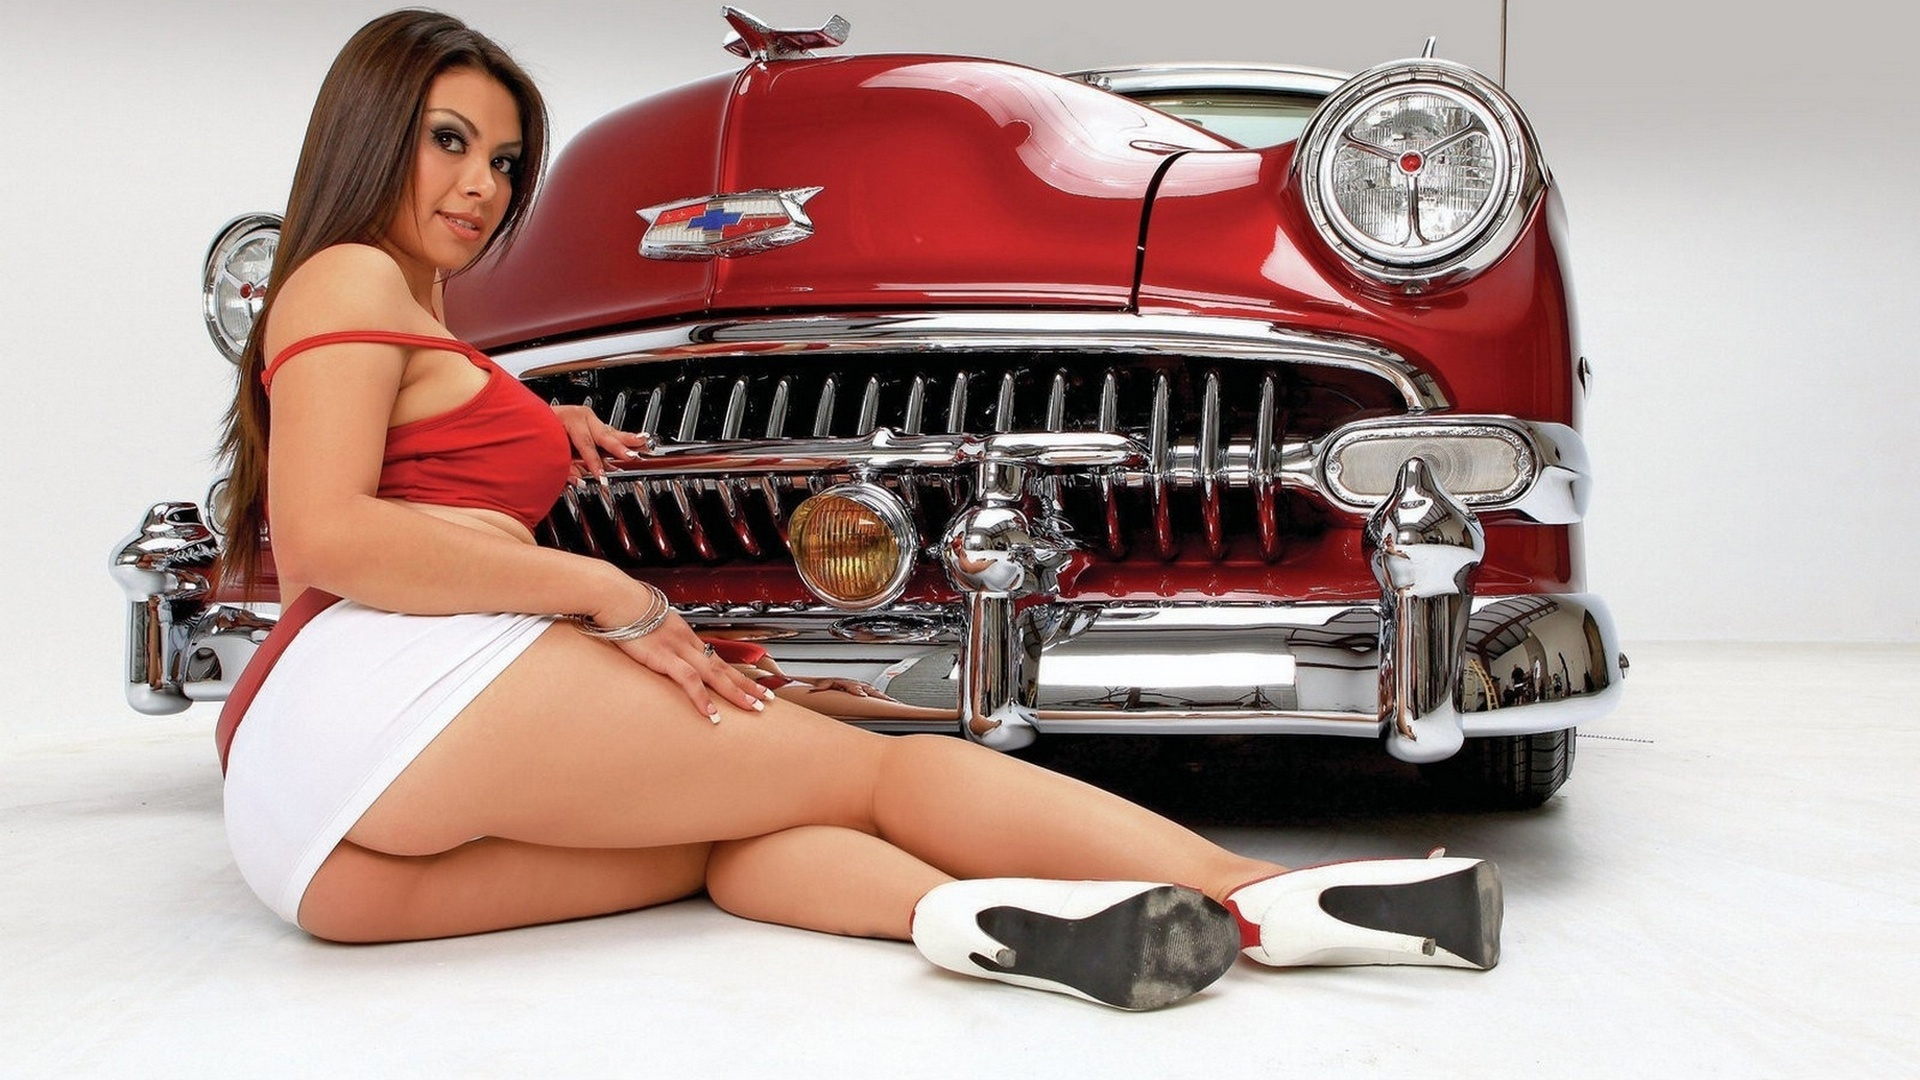 naked-chevy-women-halston